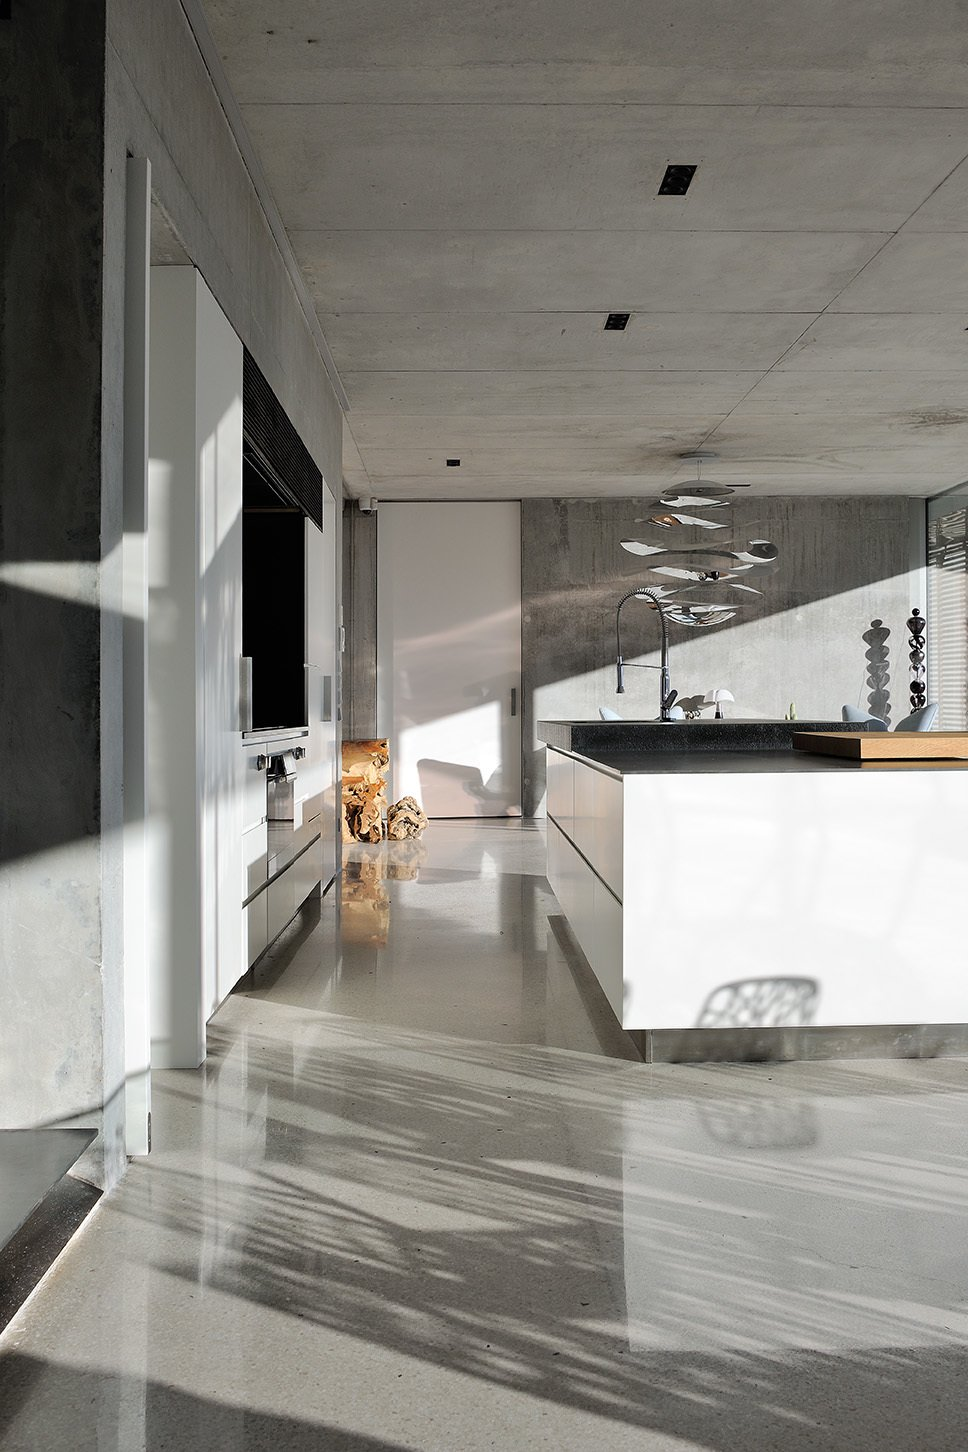 Kitchen, Range, Concrete, Ceiling, Refrigerator, Wall Oven, Concrete, White, Cooktops, and Pedestal The kitchen.  Best Kitchen Range White Wall Oven Concrete Photos from La Mira Ra